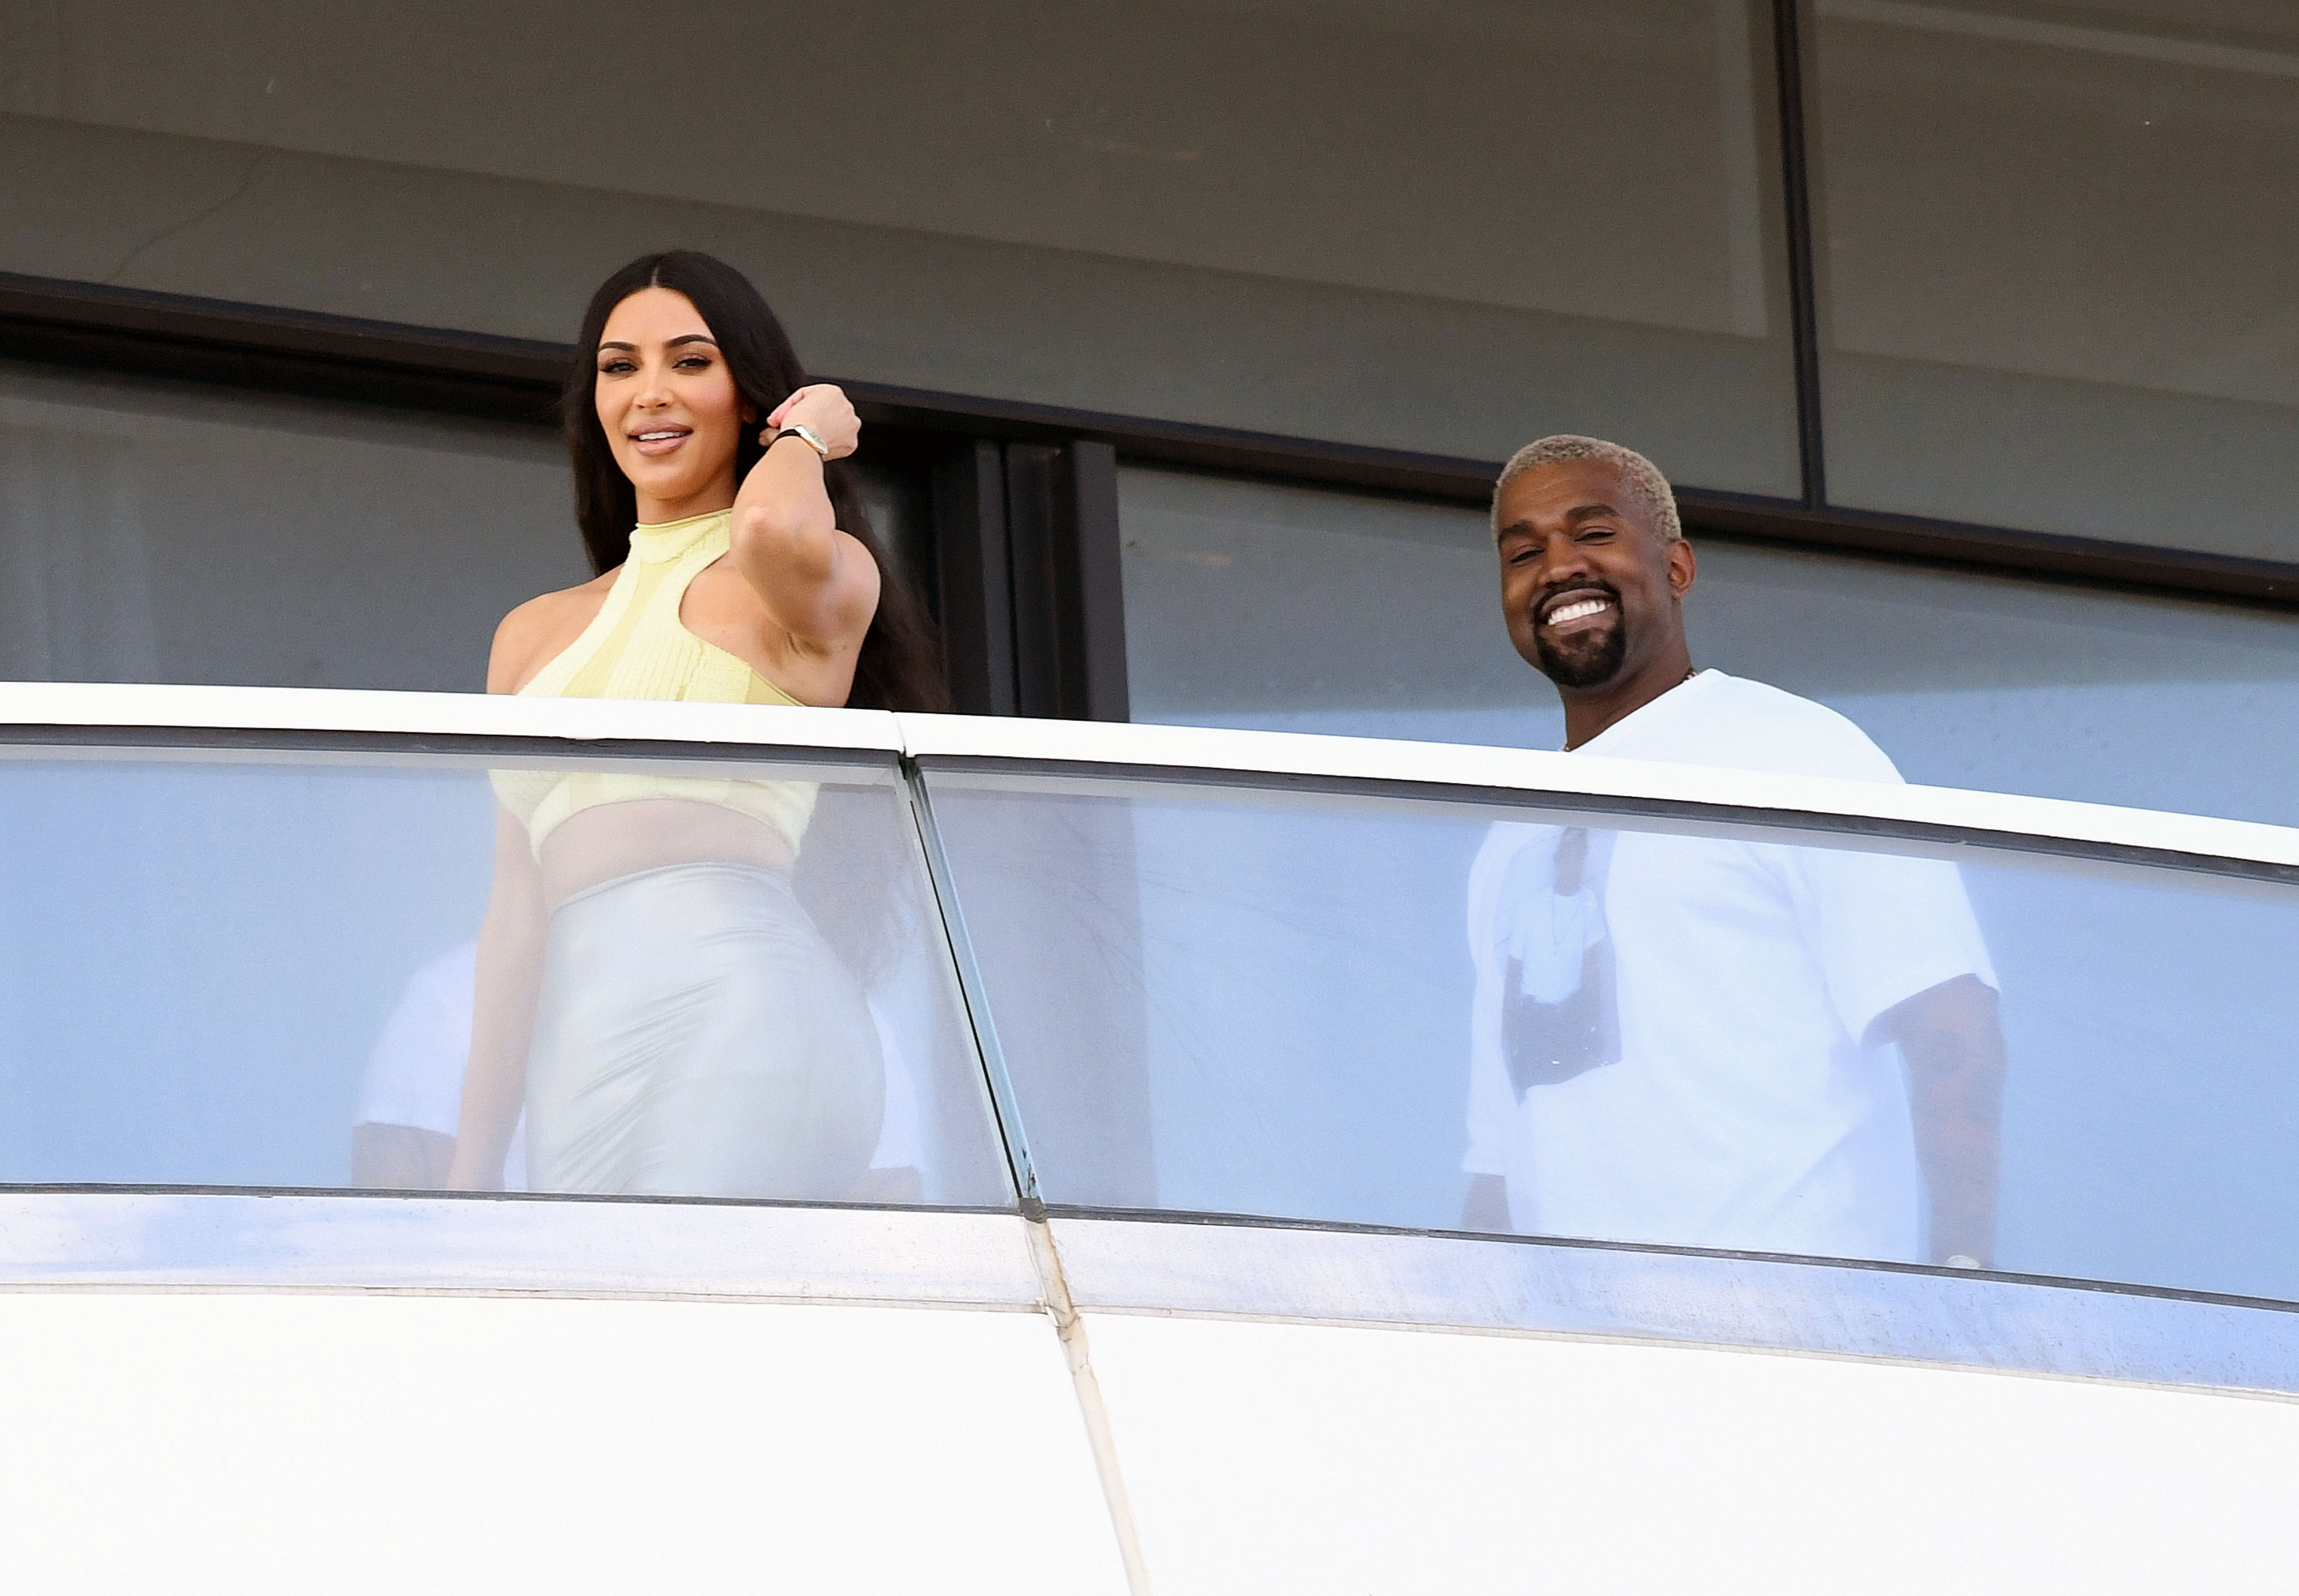 Revisit the 5 Most Kimye Things the Power Couple Have Done Kanye buying Kim a $14M Miami Beach condo for Christmas in 2018 - West made headlines in December 2018 when he was in the final stages of buying Kardashian a luxury condo in Miami Beach for a cool $14 million. Though the grand gesture was romantic (and expensive), the MC ultimately reconsidered and passed on the deal.